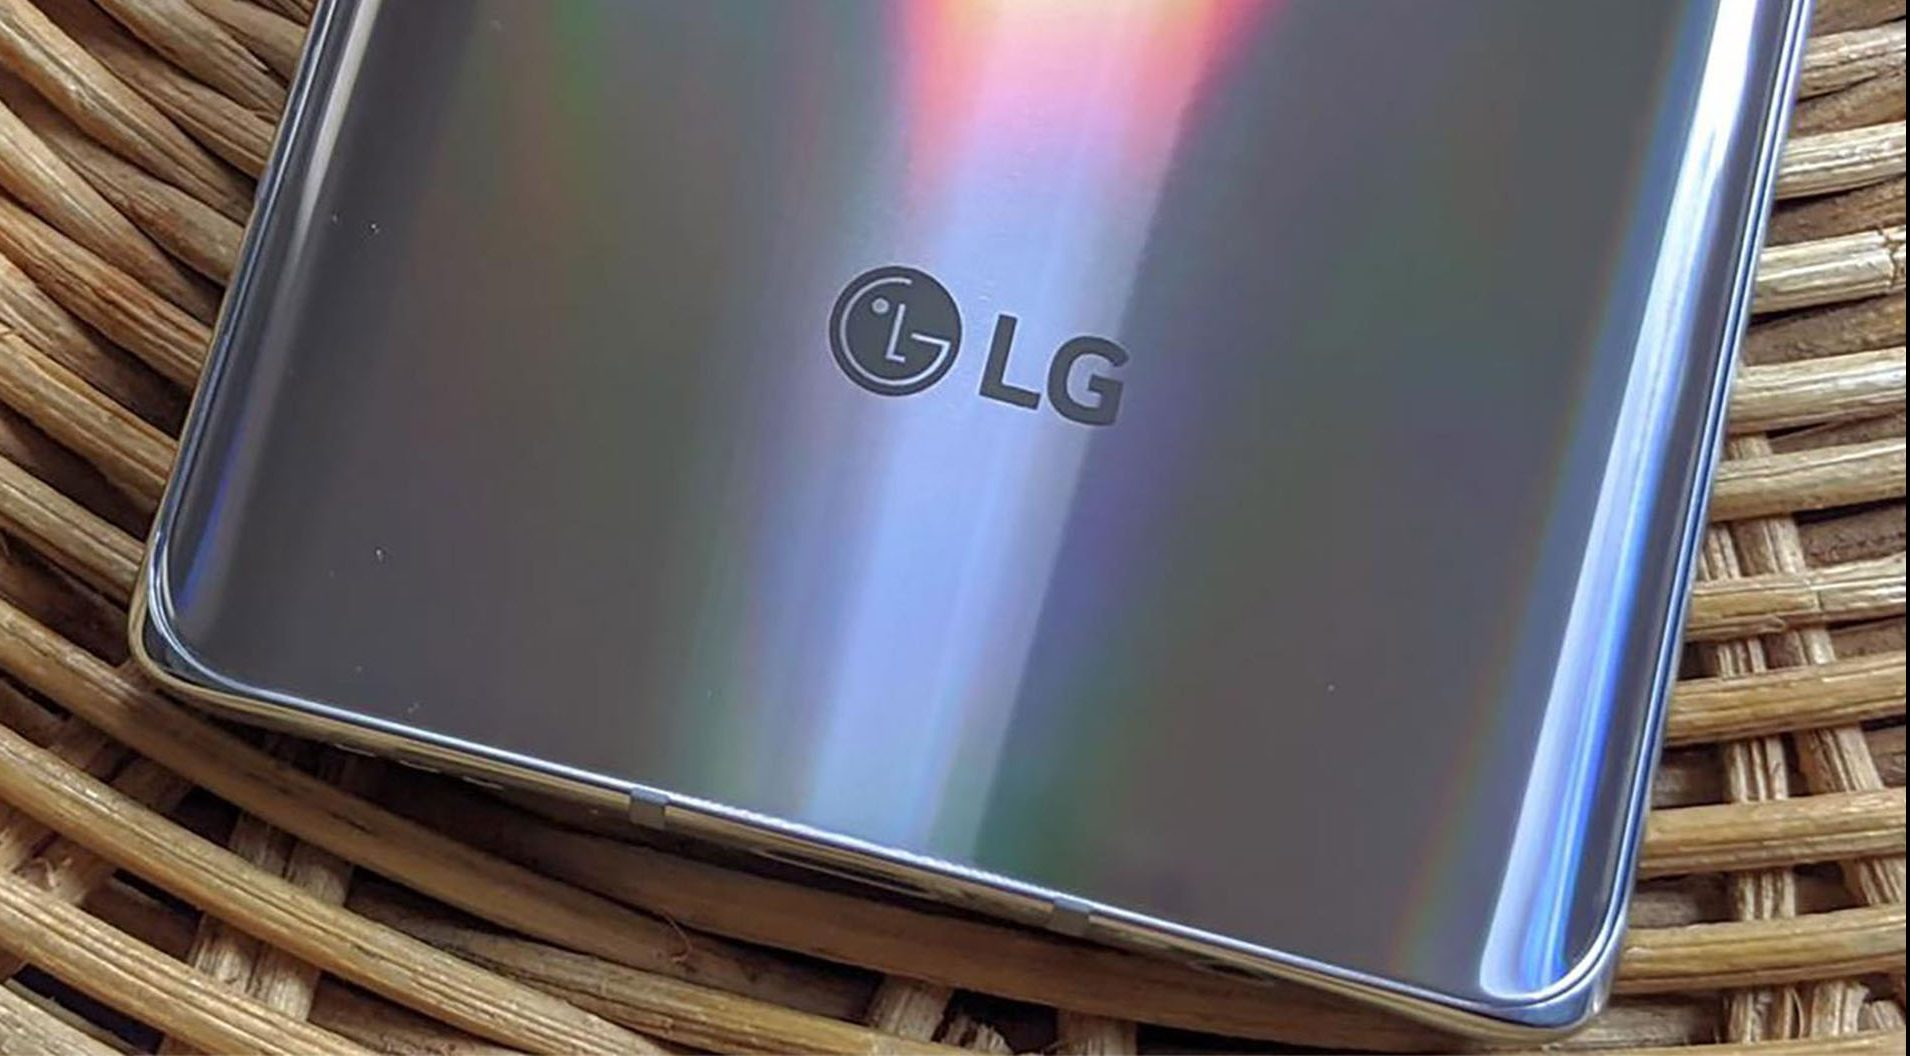 New claim on the future of the LG mobile unit unit